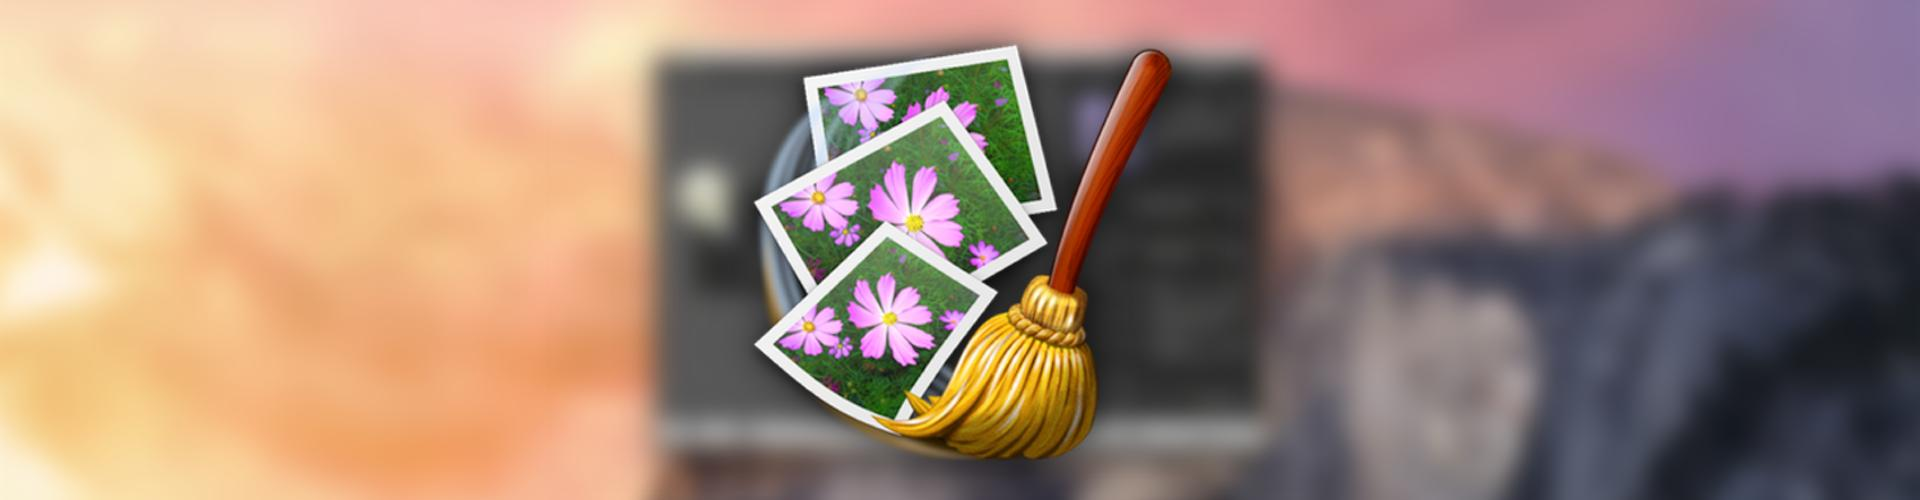 Photosweeper: Good Clean Duplicate-Finding Fun For Mac